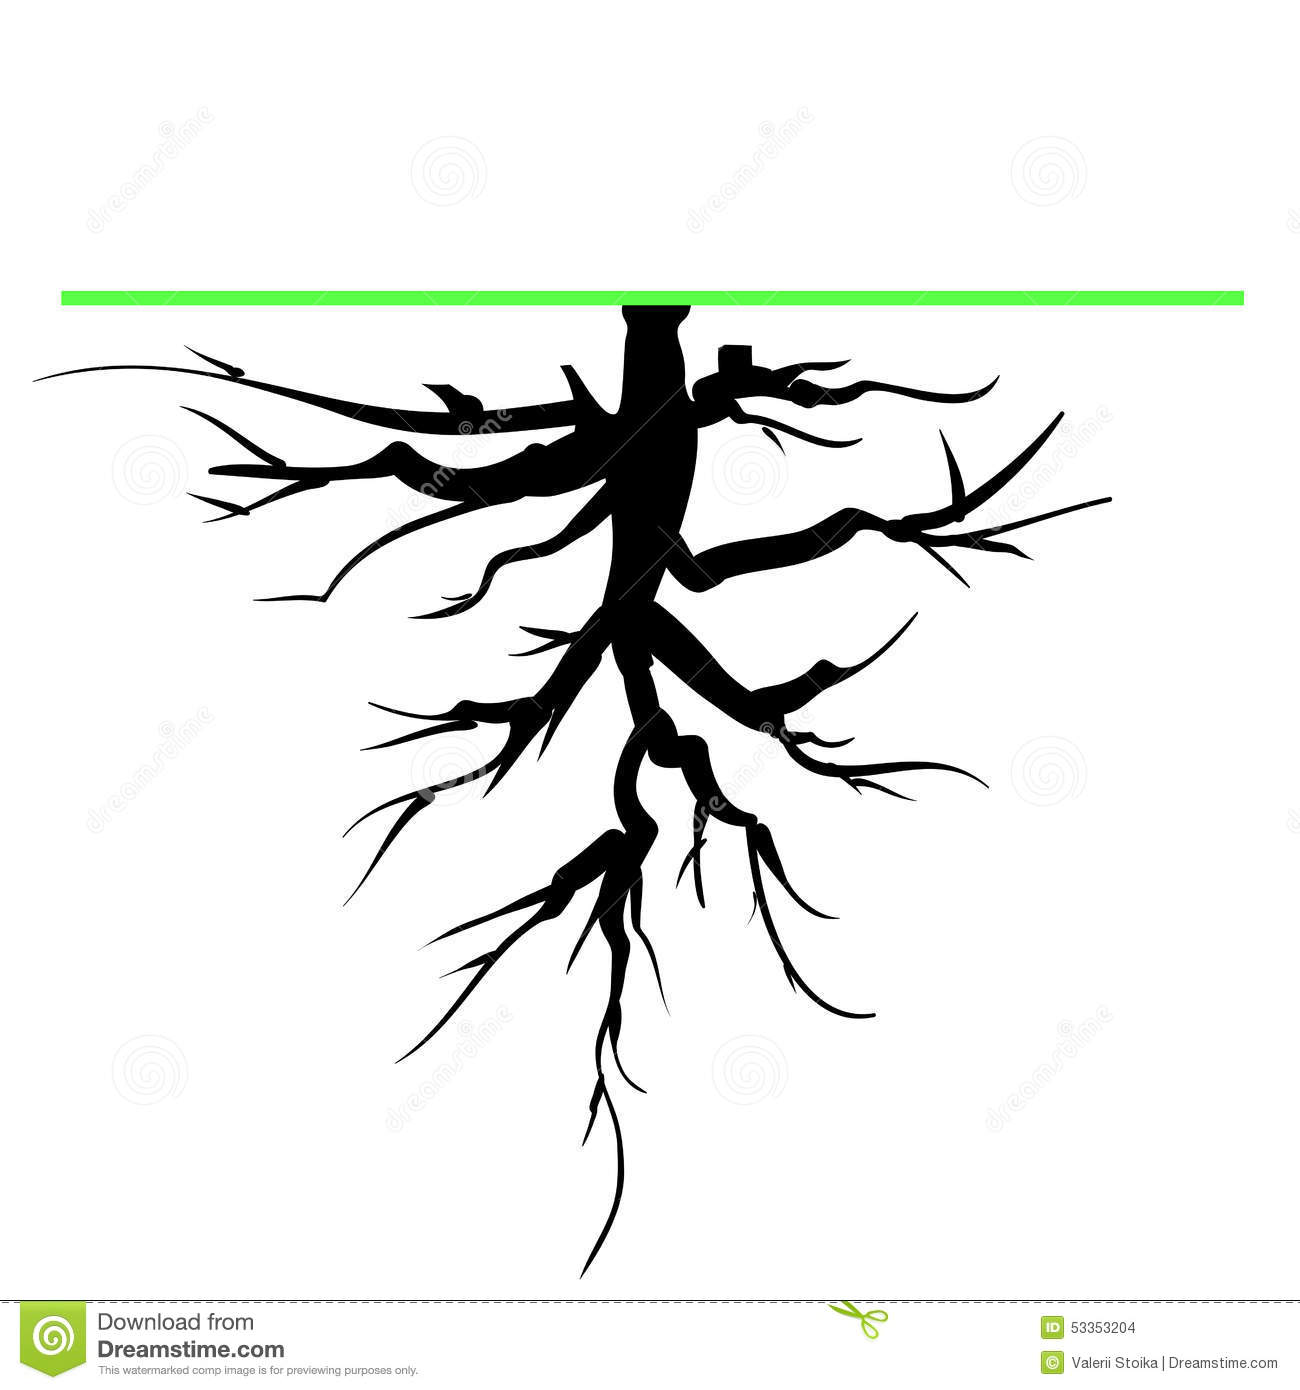 Old Tree Root Silhouette Isolated on White Background.